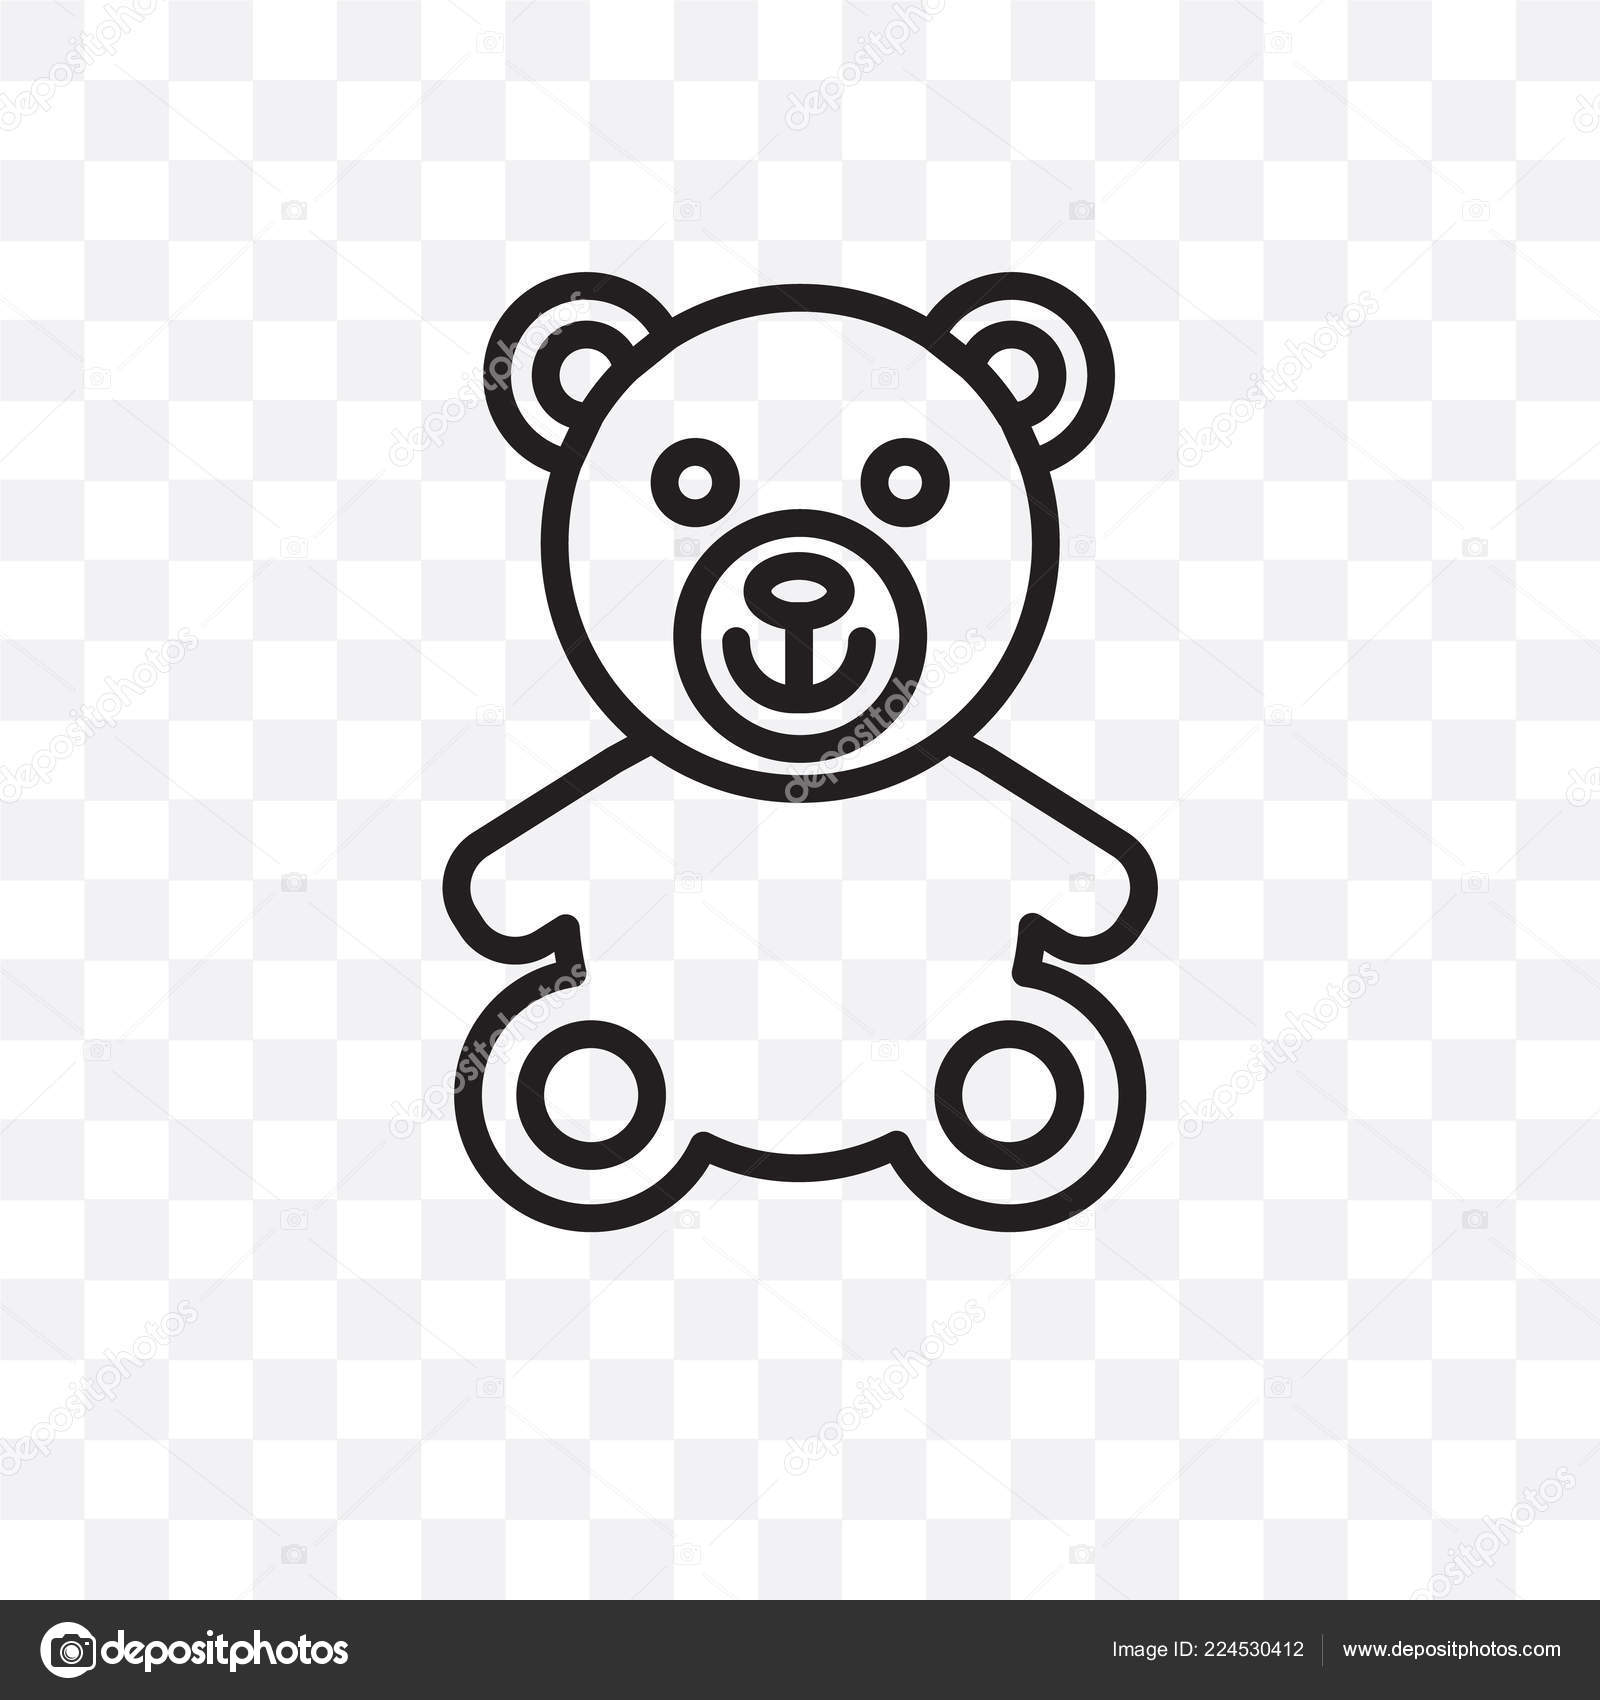 teddy bear vector linear icon isolated transparent background teddy bear stock vector c coolvectorstock 224530412 https depositphotos com 224530412 stock illustration teddy bear vector linear icon html